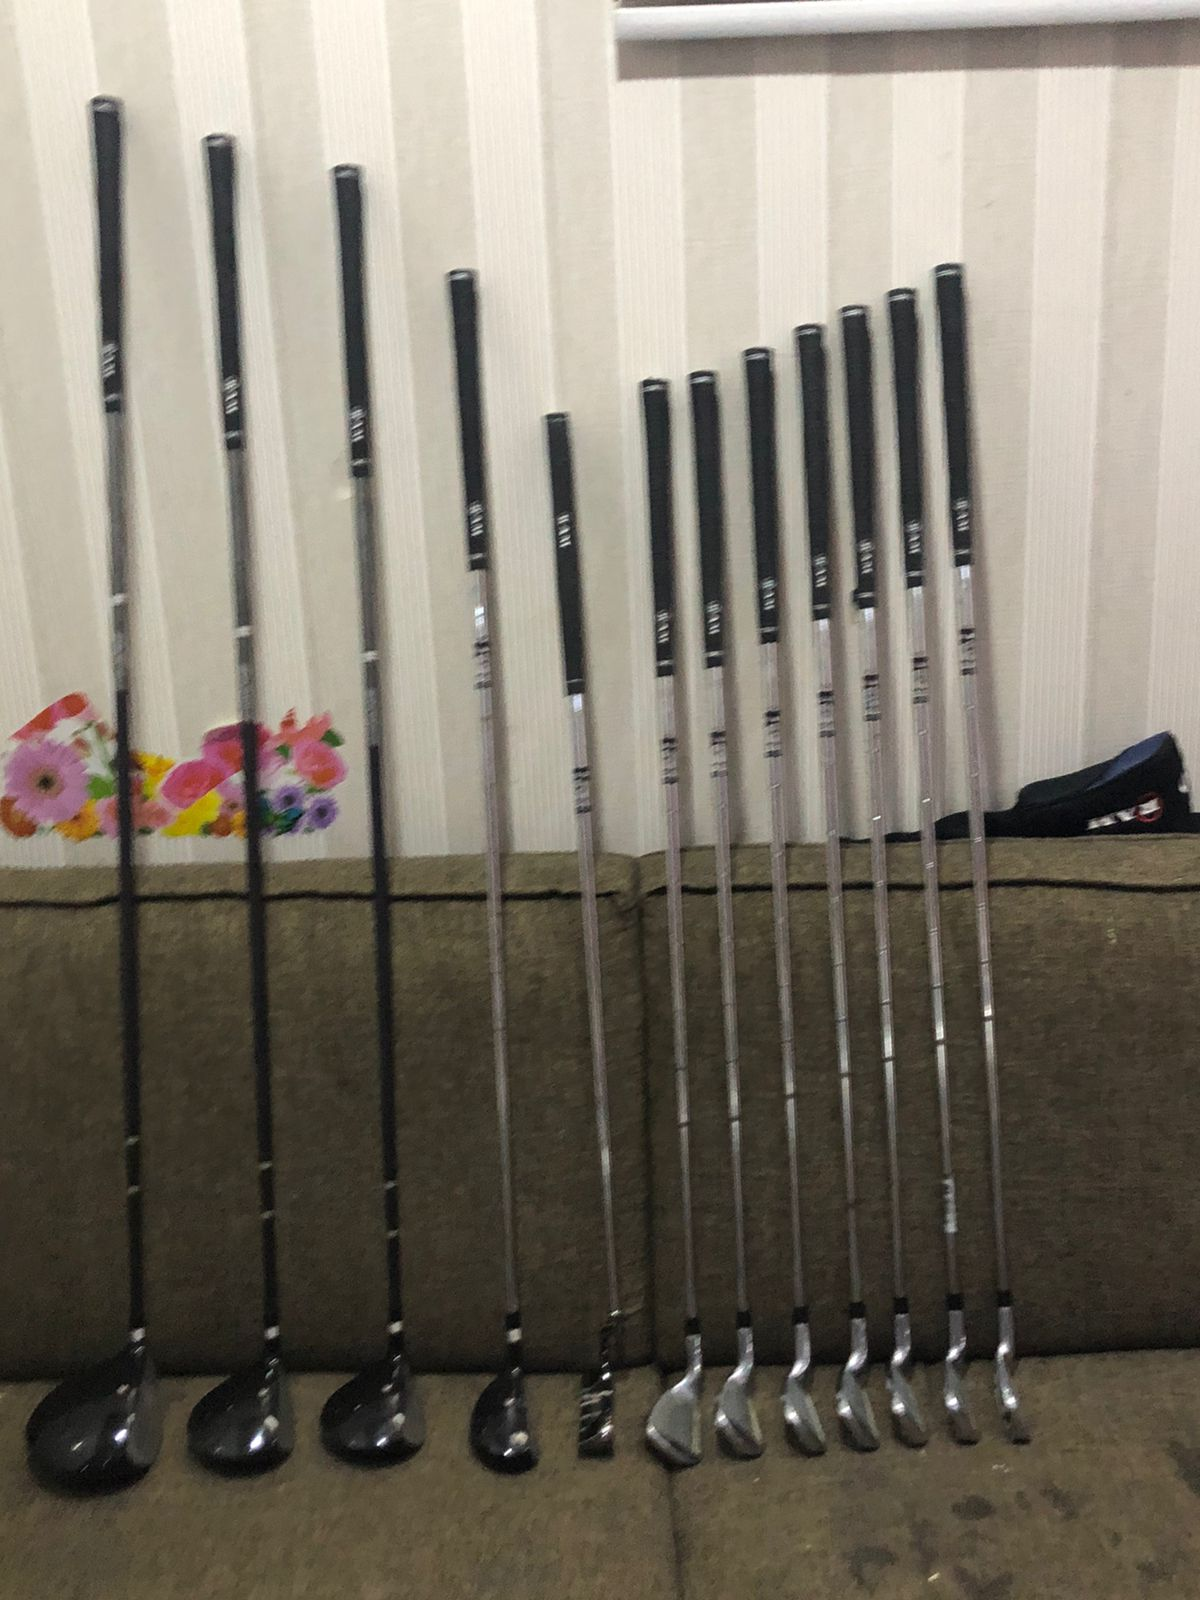 RAM Golf Accubar Plus Golf Clubs Set – Graphite Shafted Woods and Stainless Steel Irons – Lefty